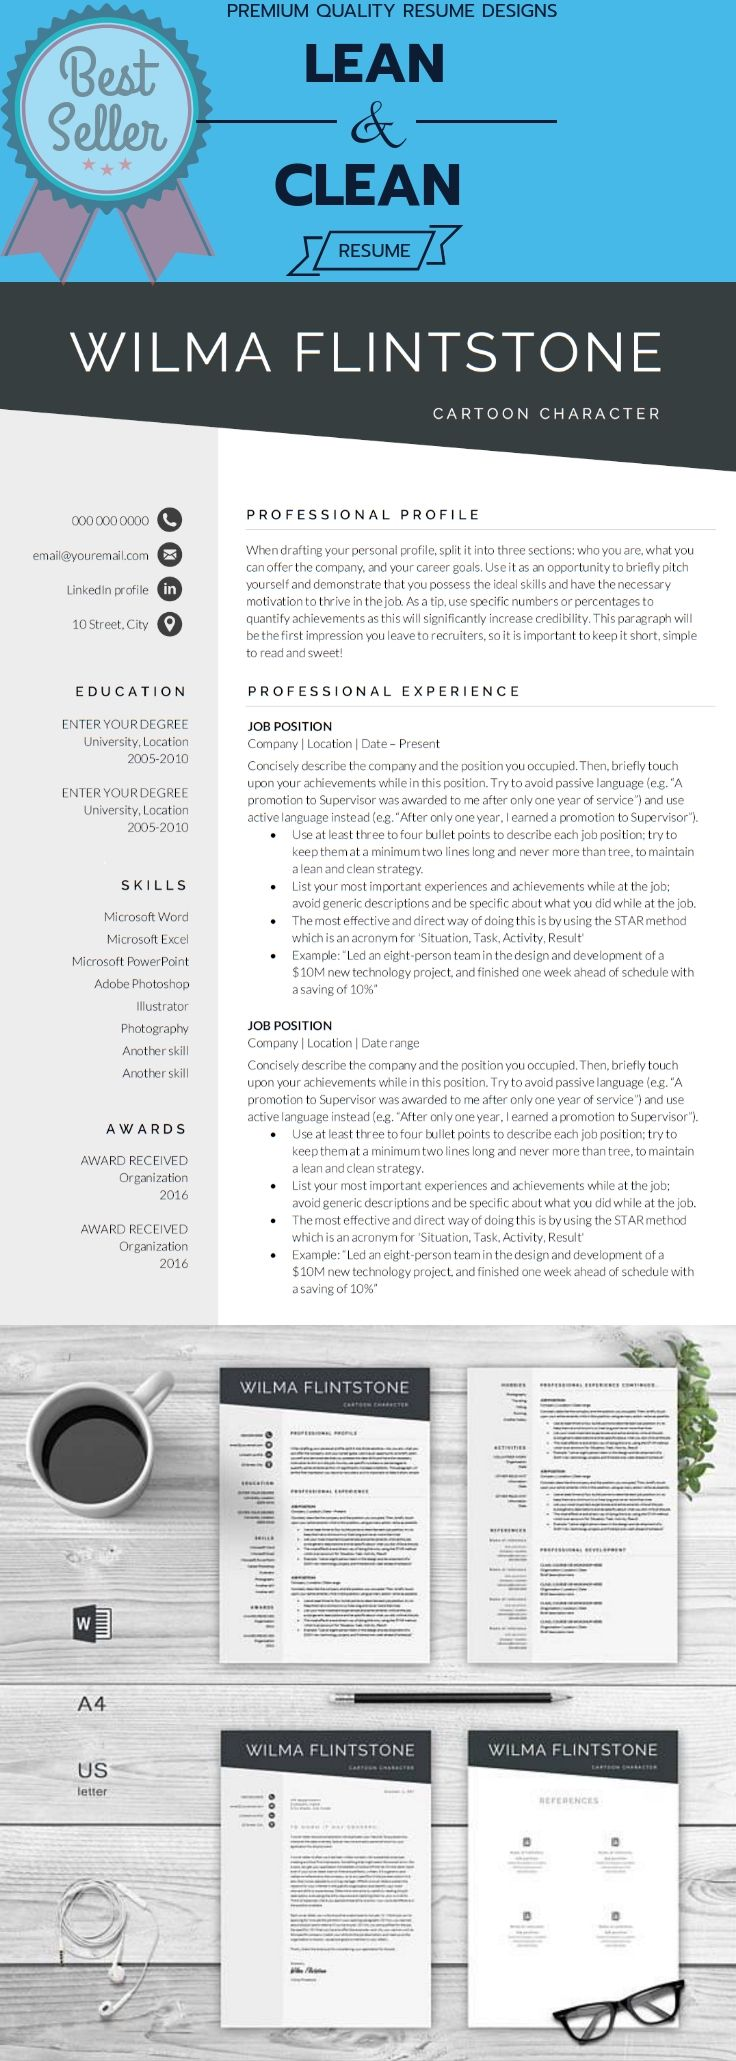 bartender job description resume%0A Resume Template   Modern Resume   Creative Resume   Professional Resume    Teacher Resume   Word